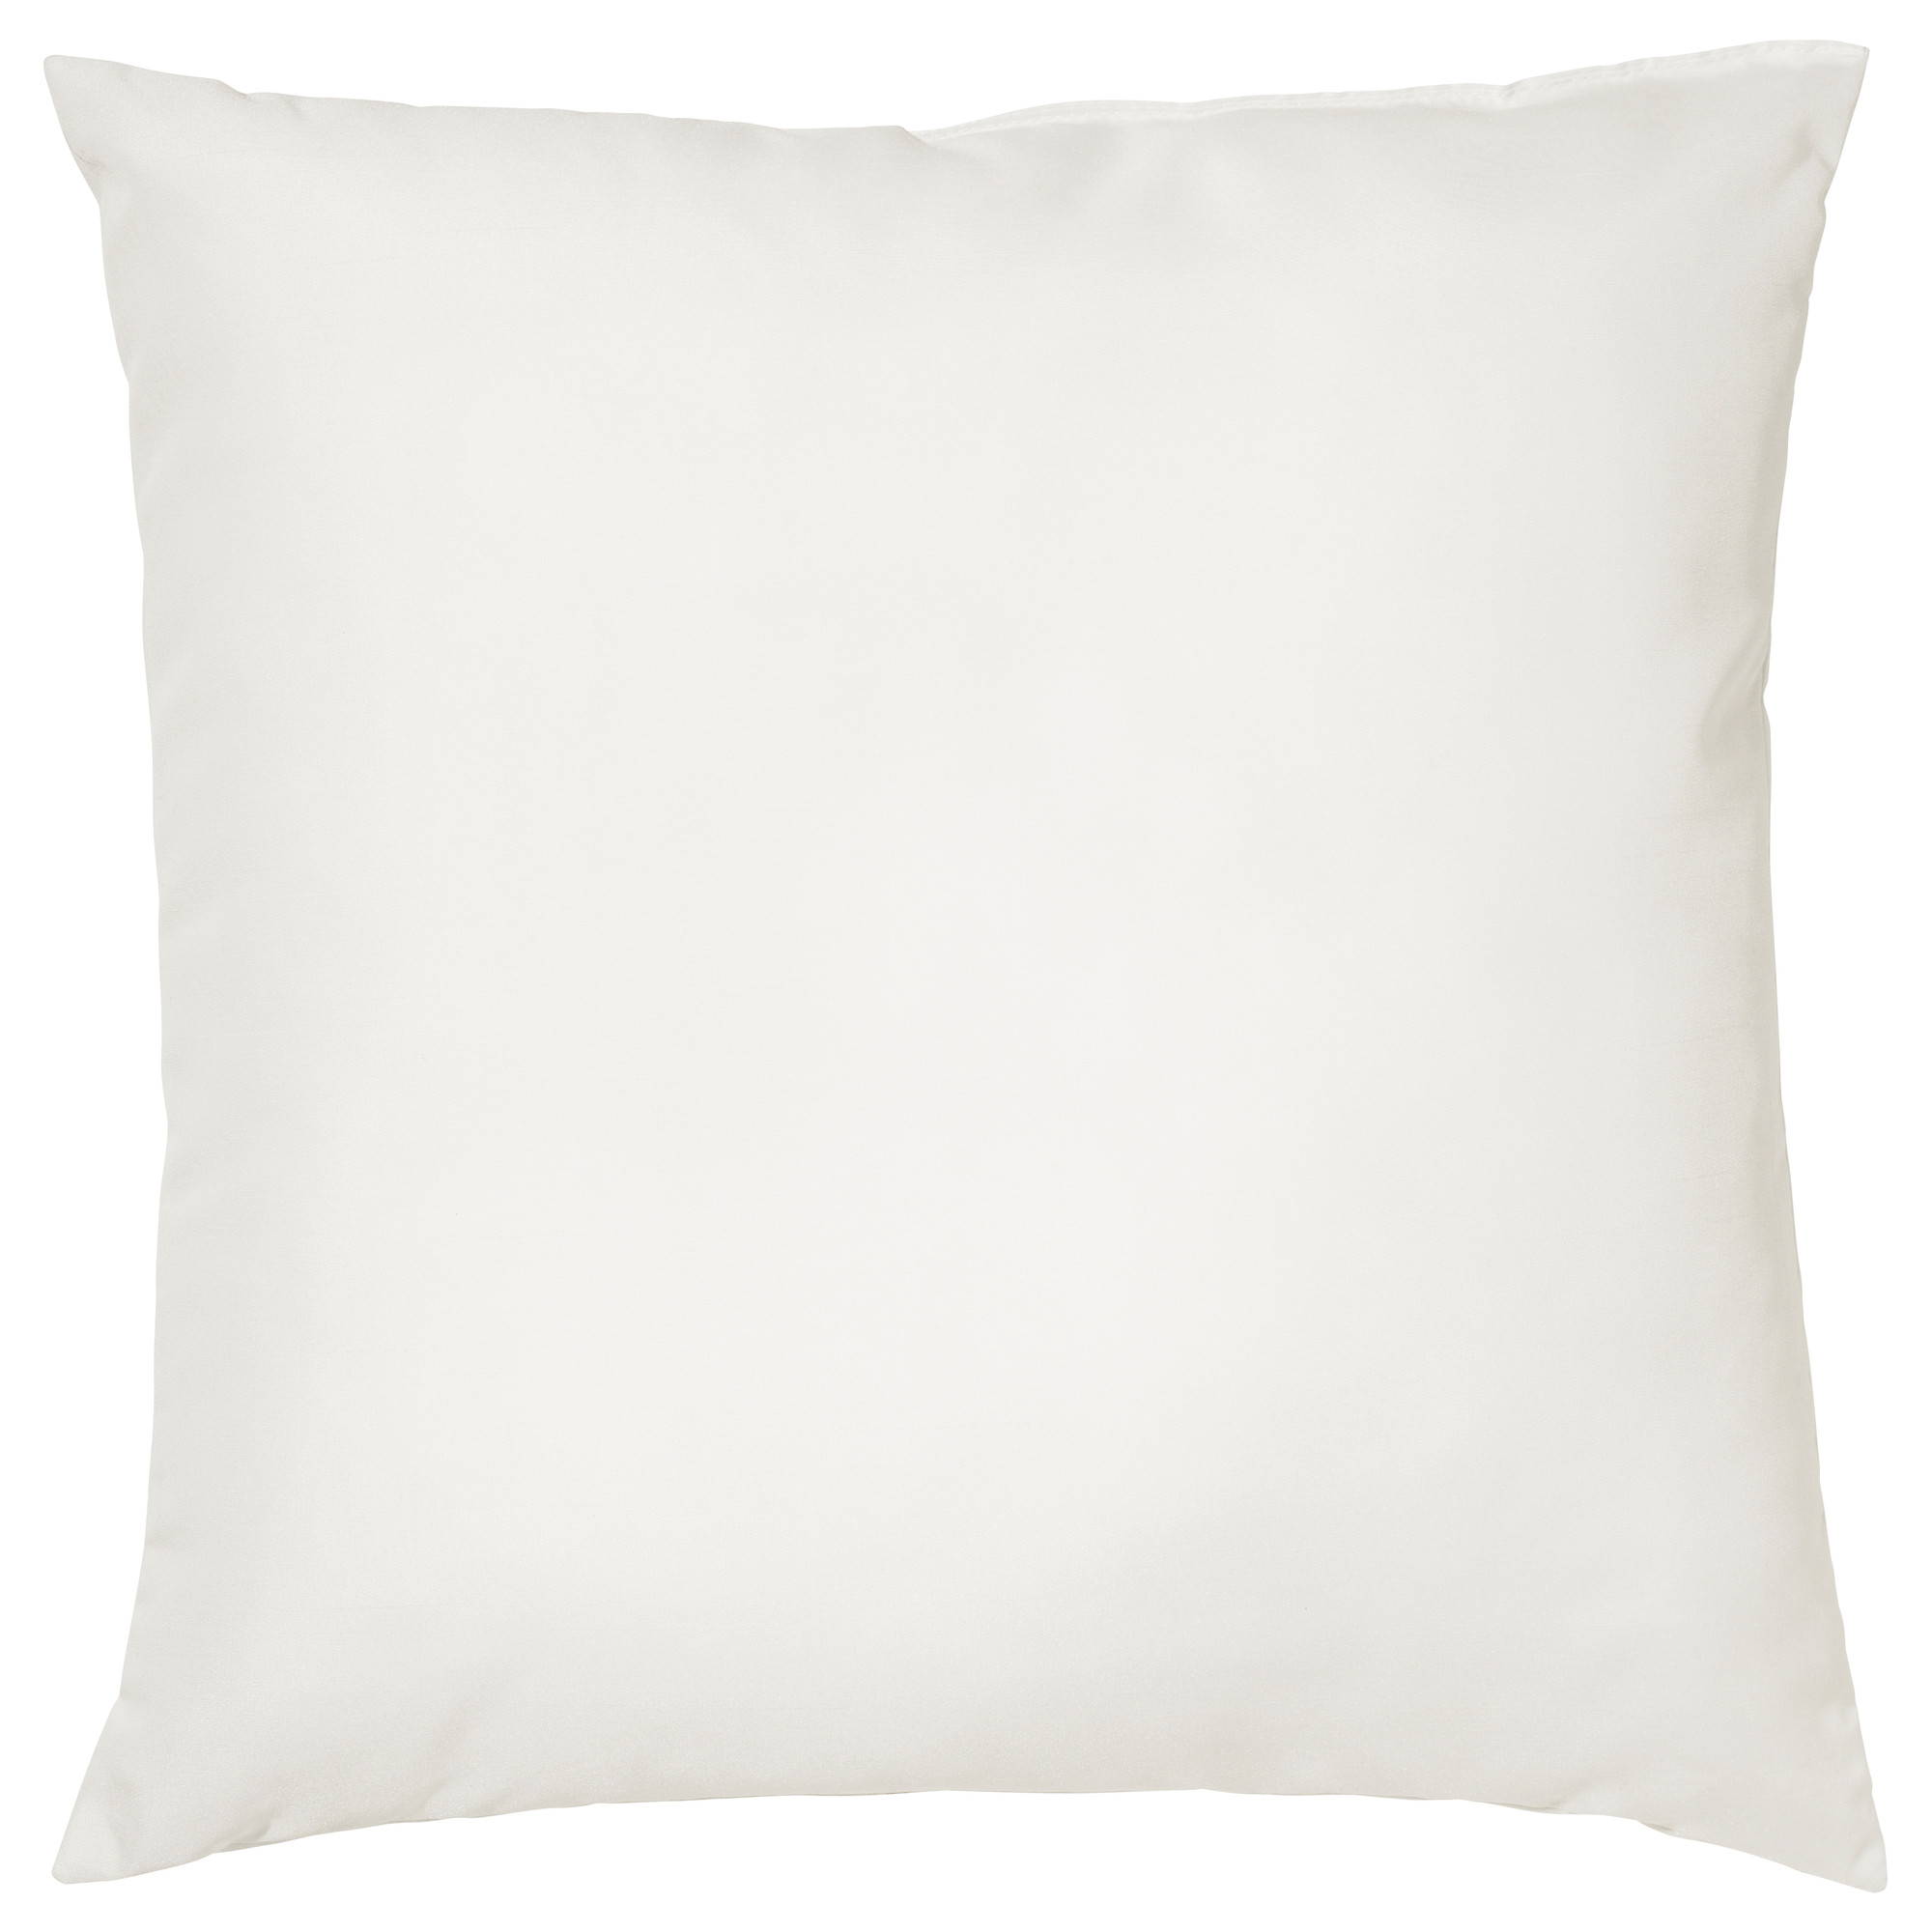 Cushion White for Lounge Seating 45x45cm